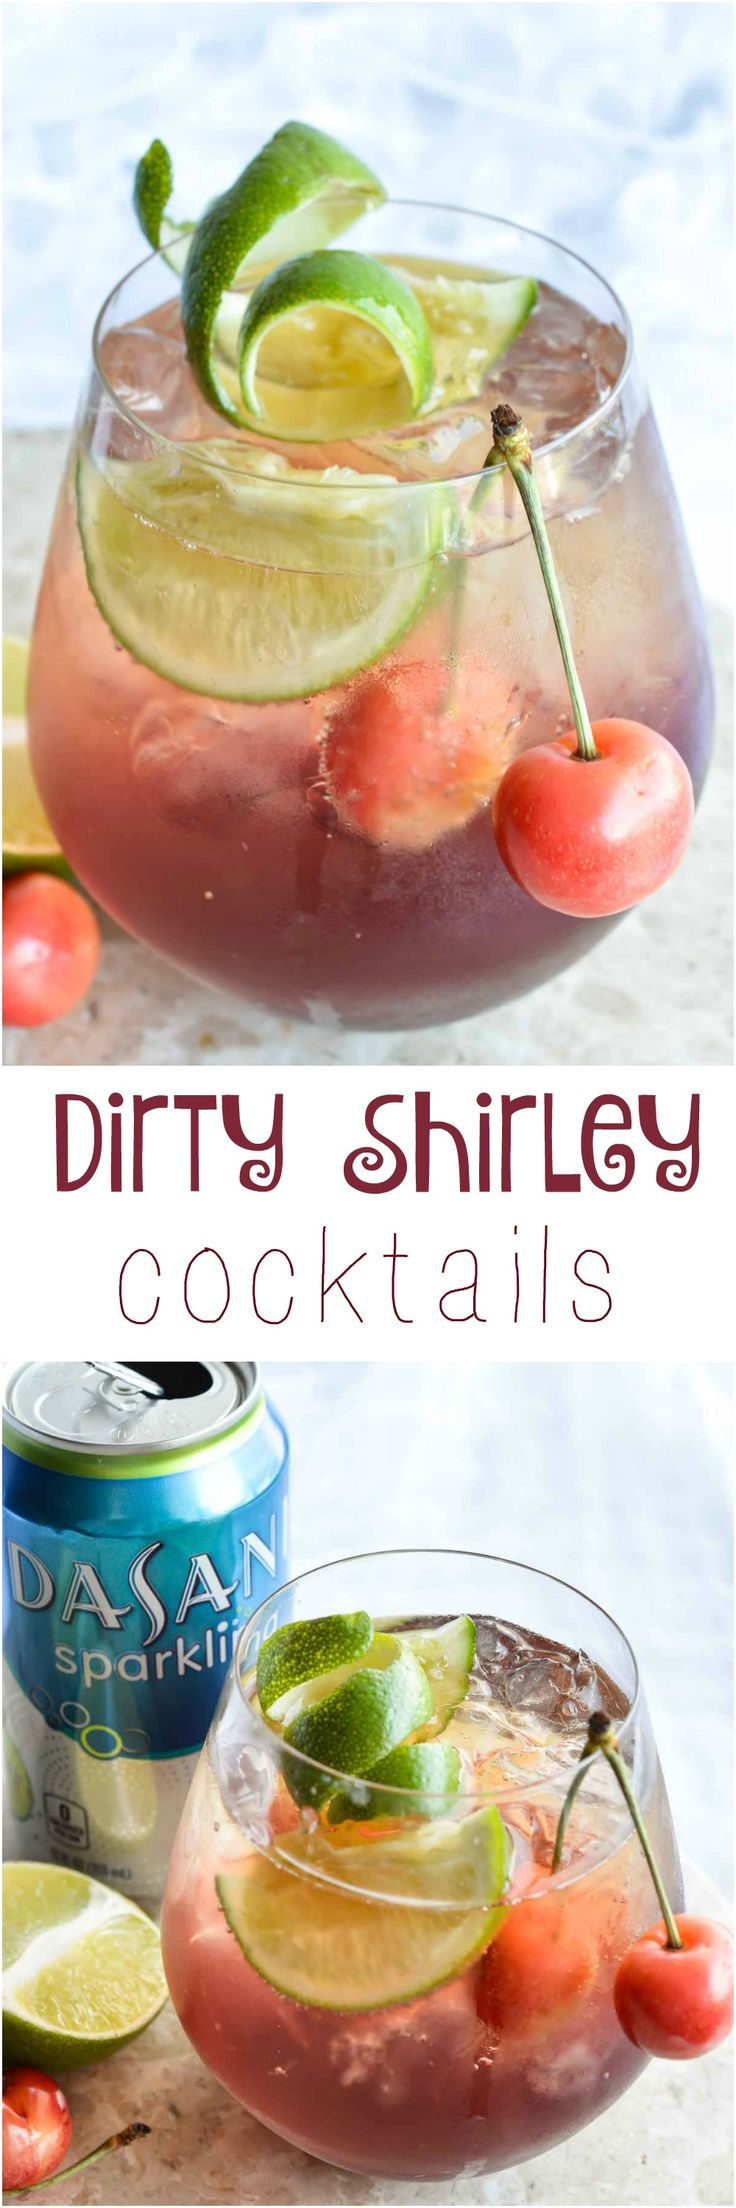 This Shirley Temple Cocktail Recipe is an easy and refreshing party drink. Also known as a Dirty Shirley; a blend of cherry, lime, rum or vodka and fizzy sparkling Dasani. #SparklingHolidays ad #drink wonkywonderful.com